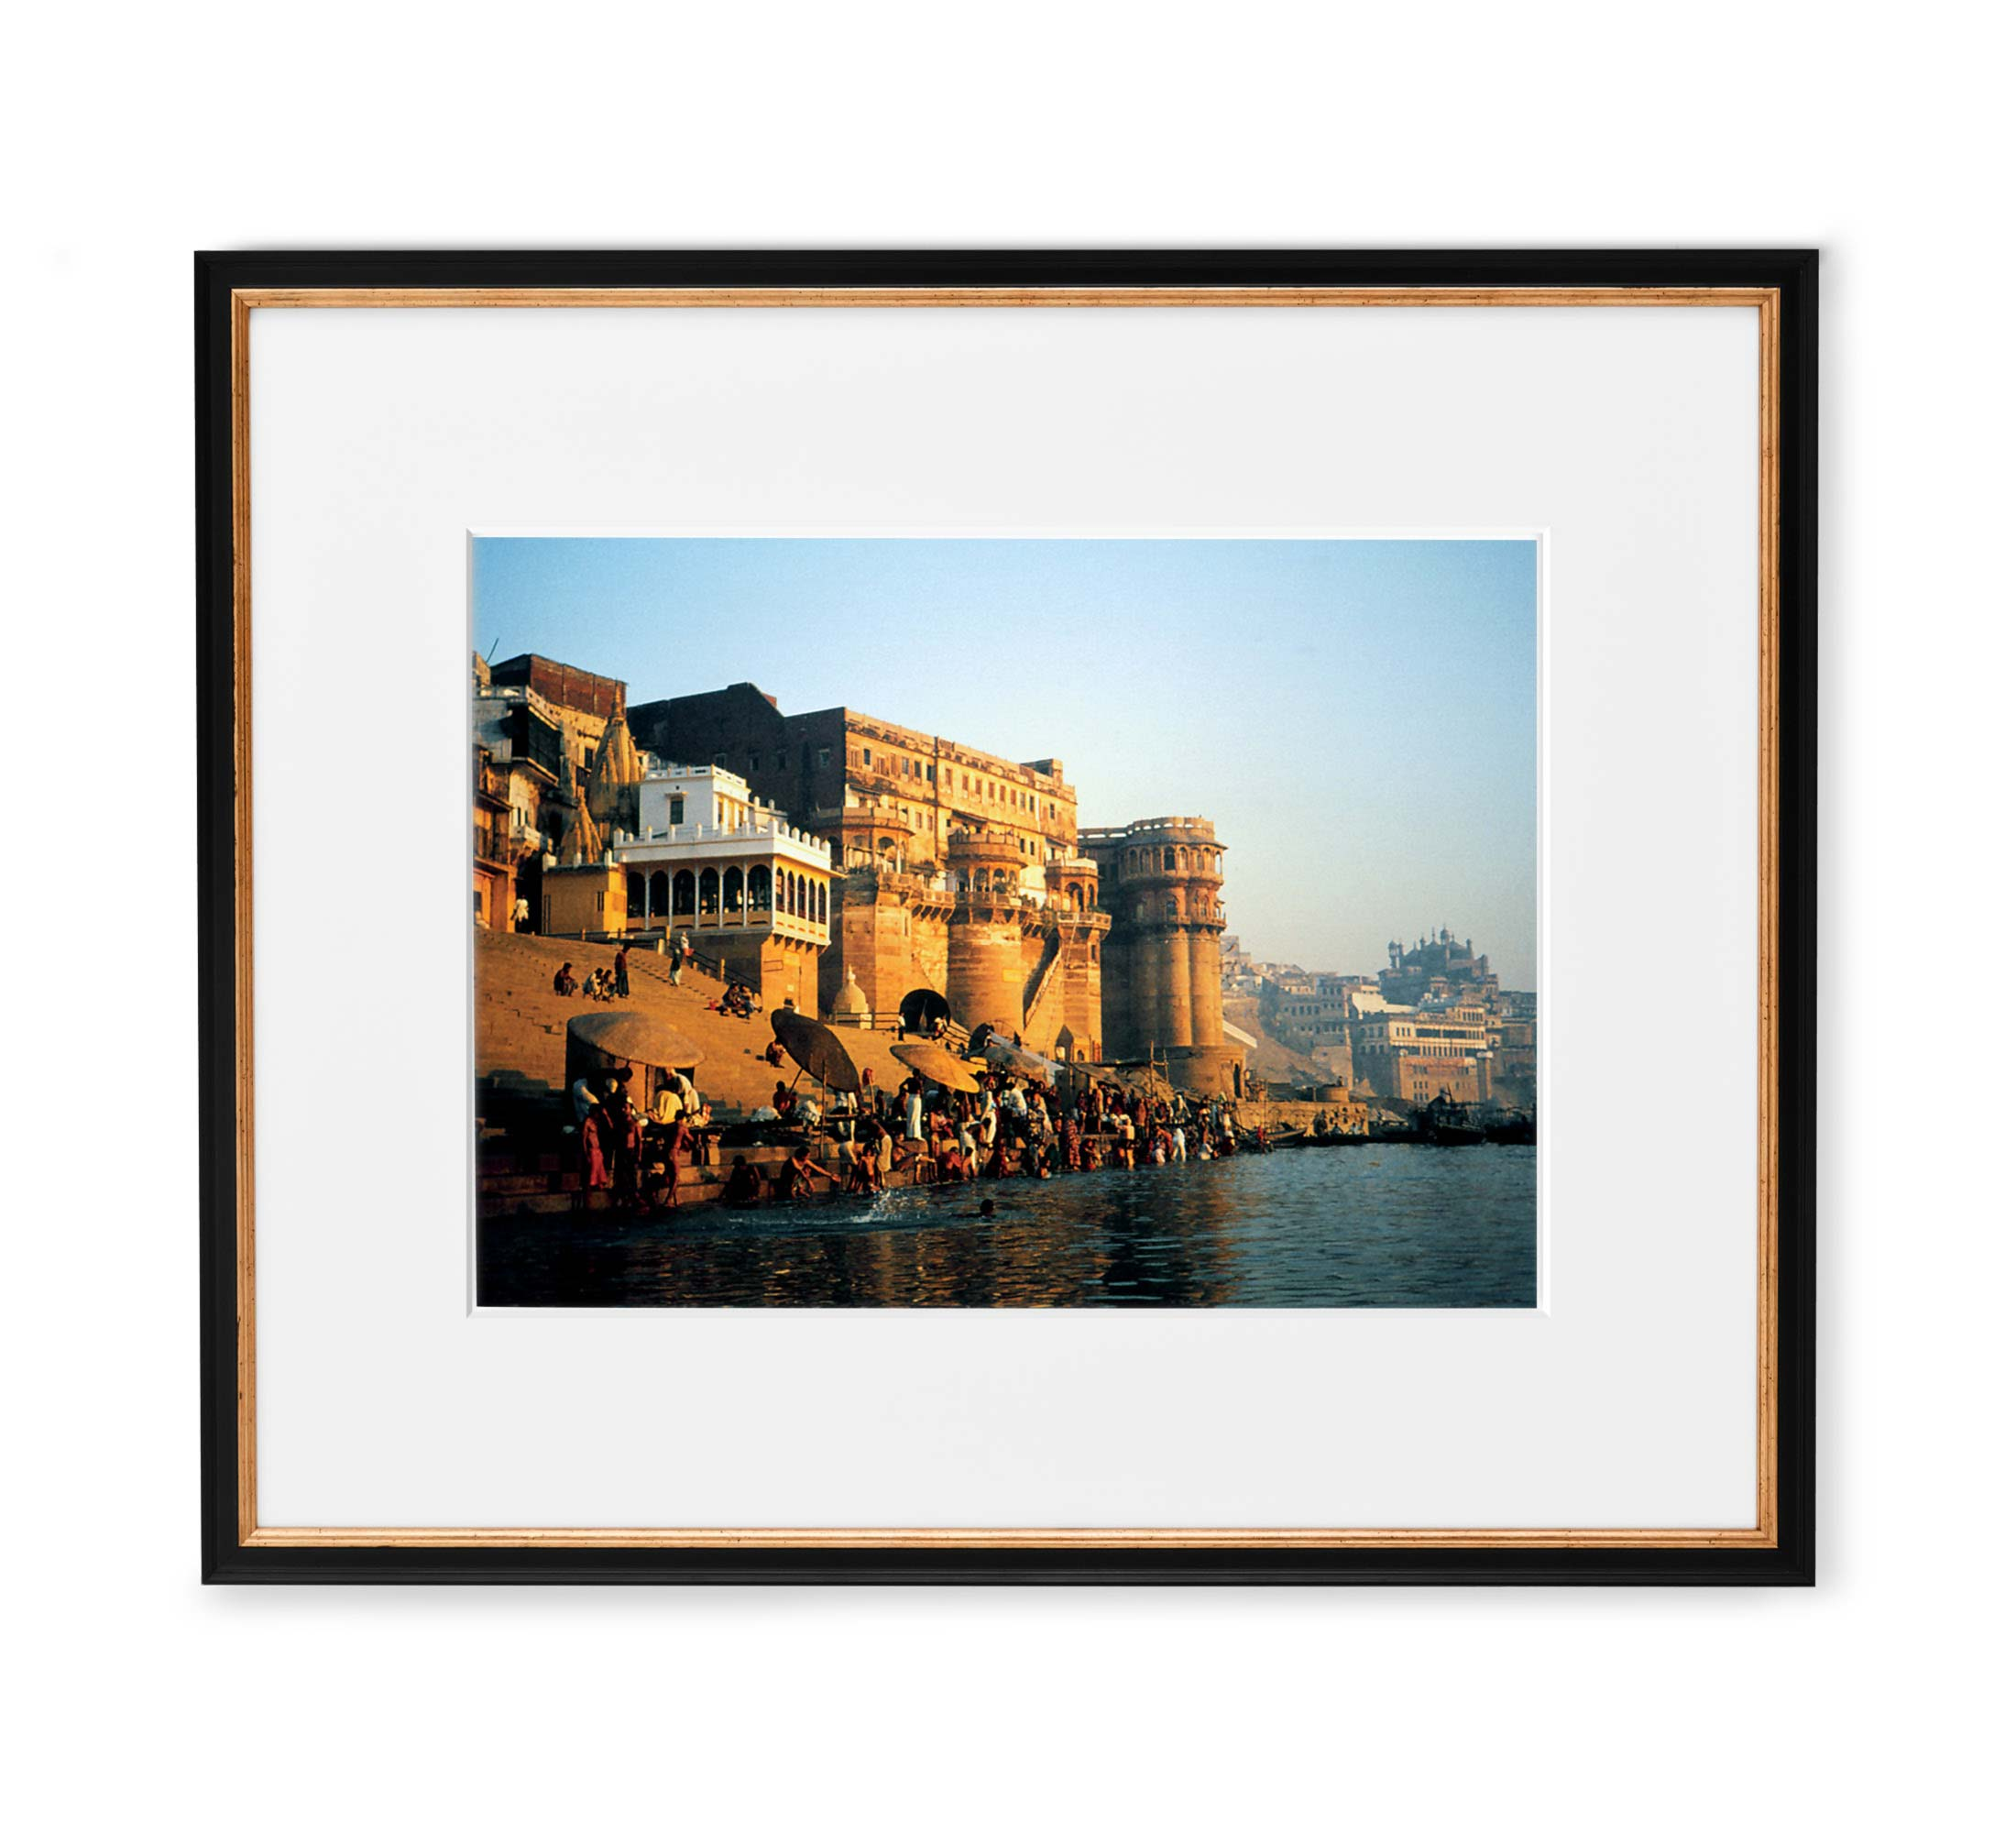 Golden Ganges Framed Black and Gold Wood